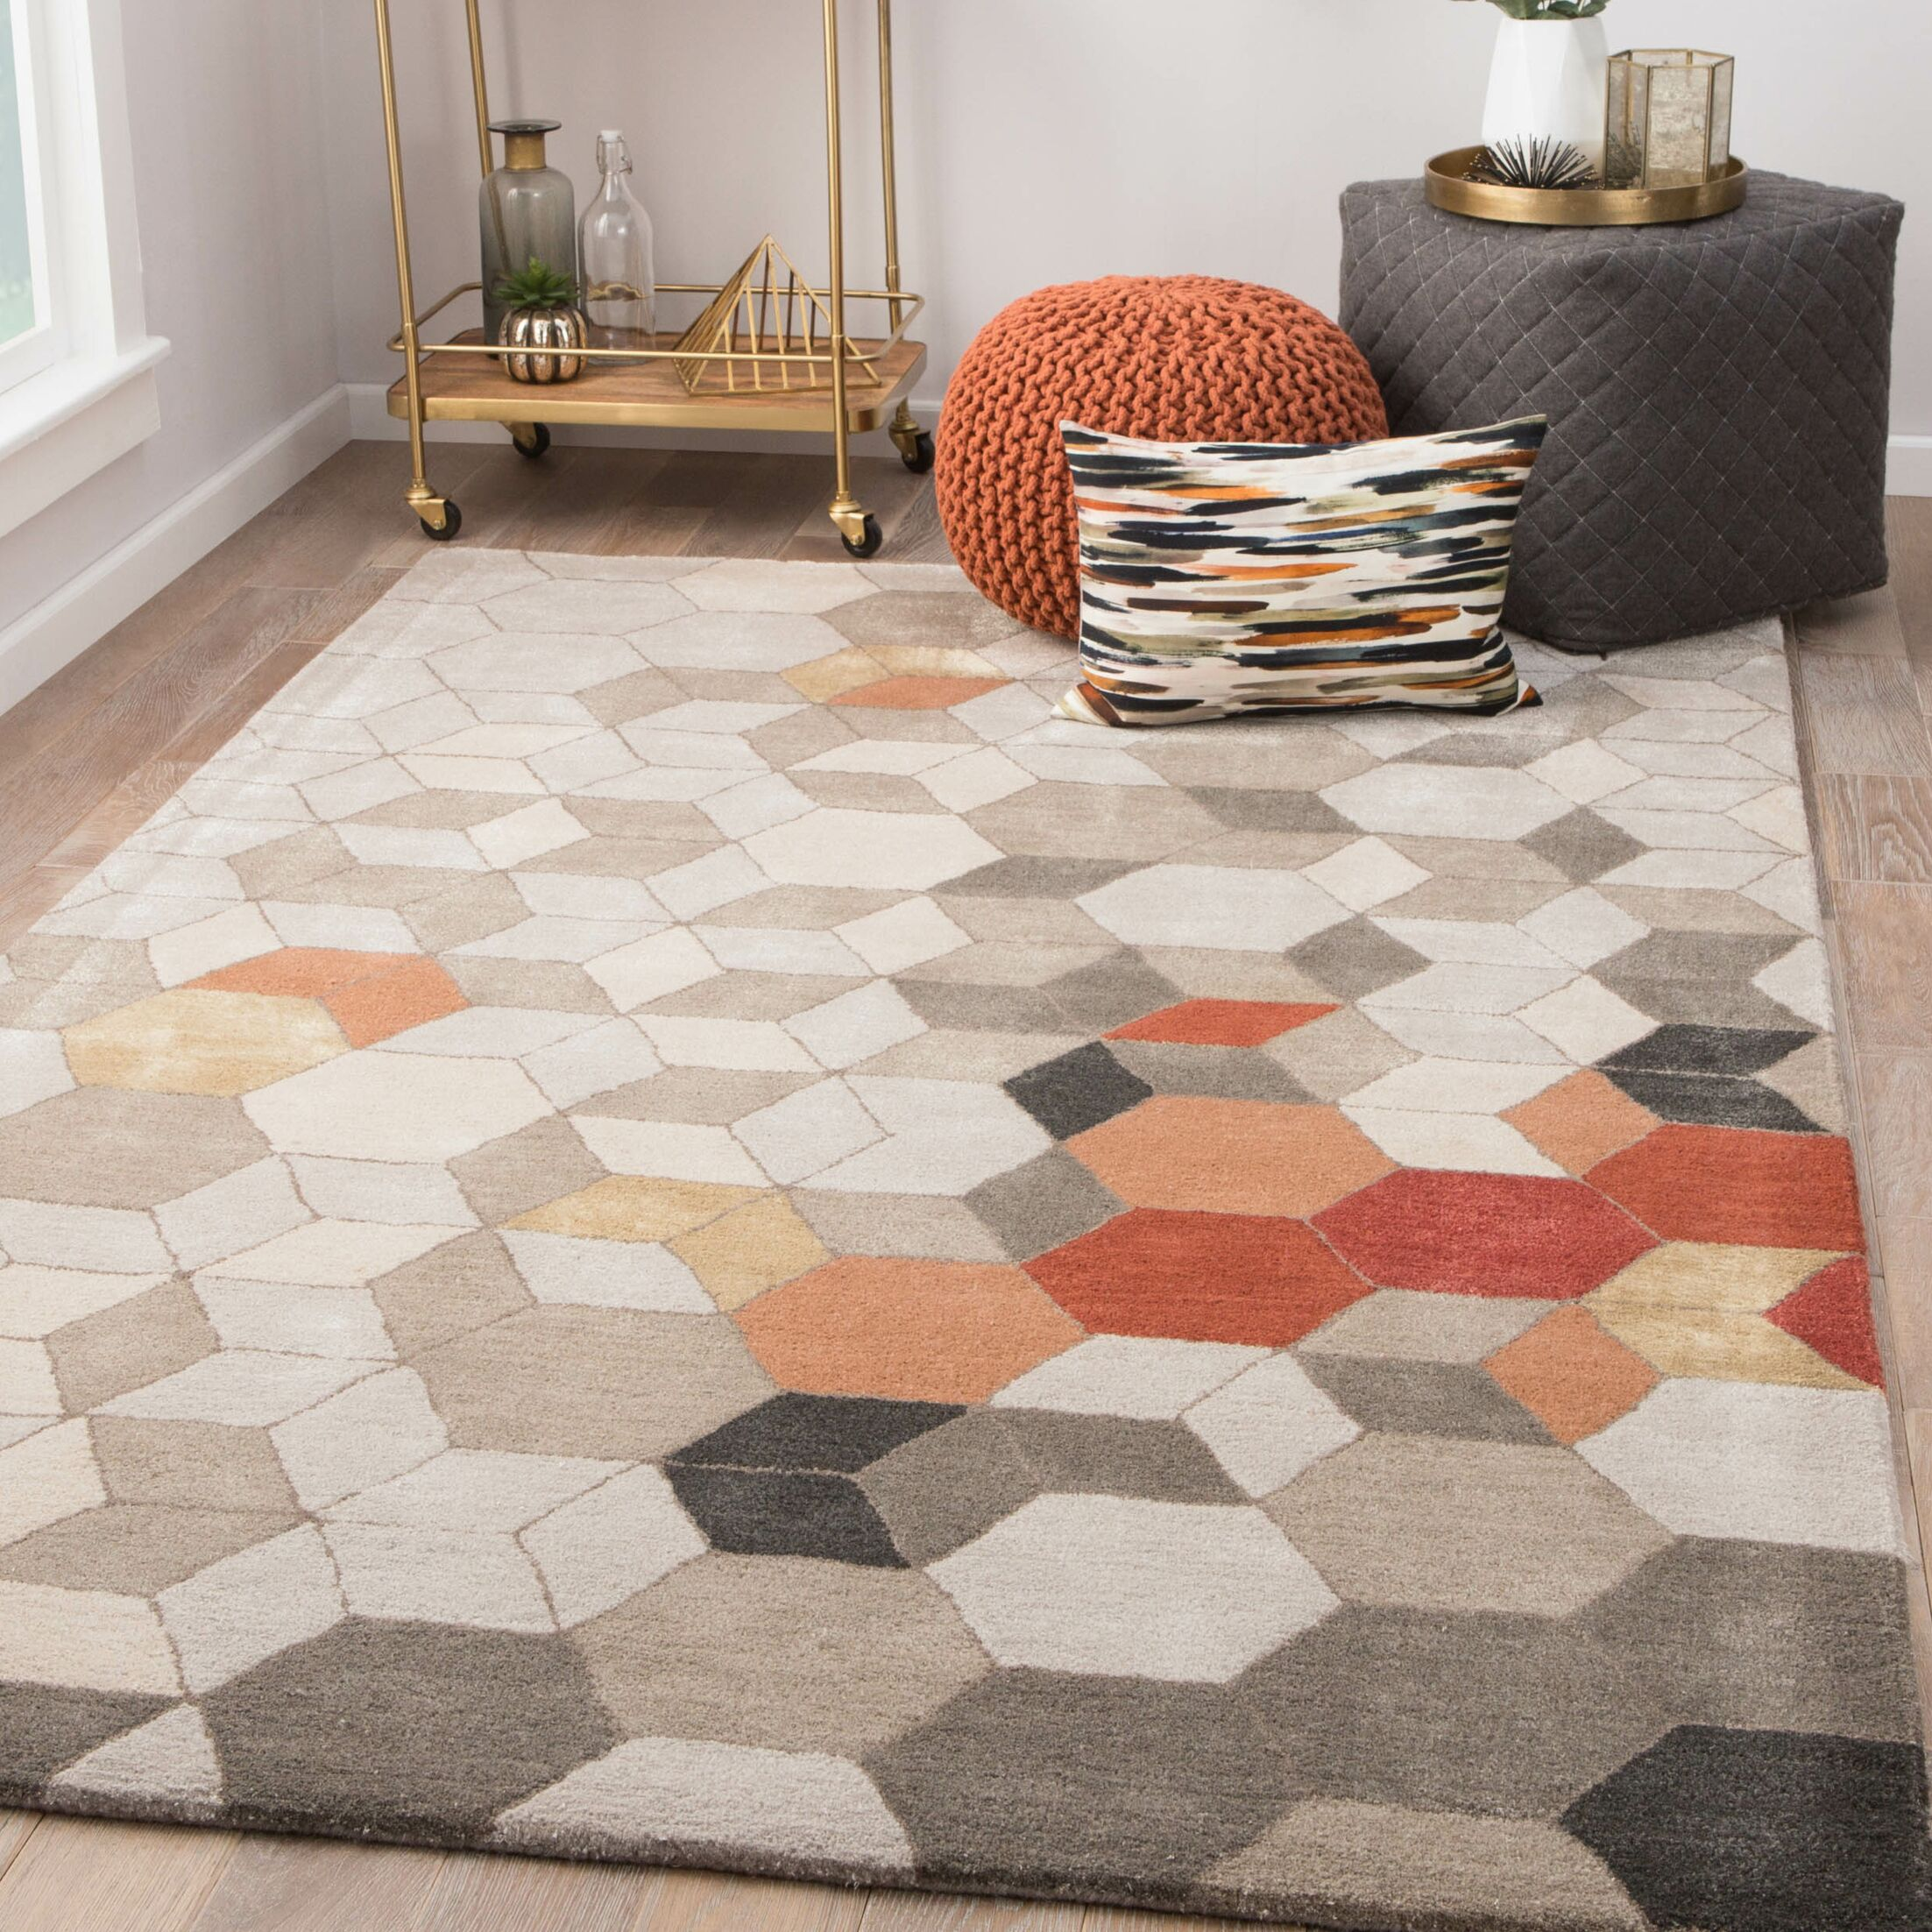 Cearley Hand-Tufted Pumice Stone/Fallen Rock Area Rug Rug Size: Rectangle 5' x 8'